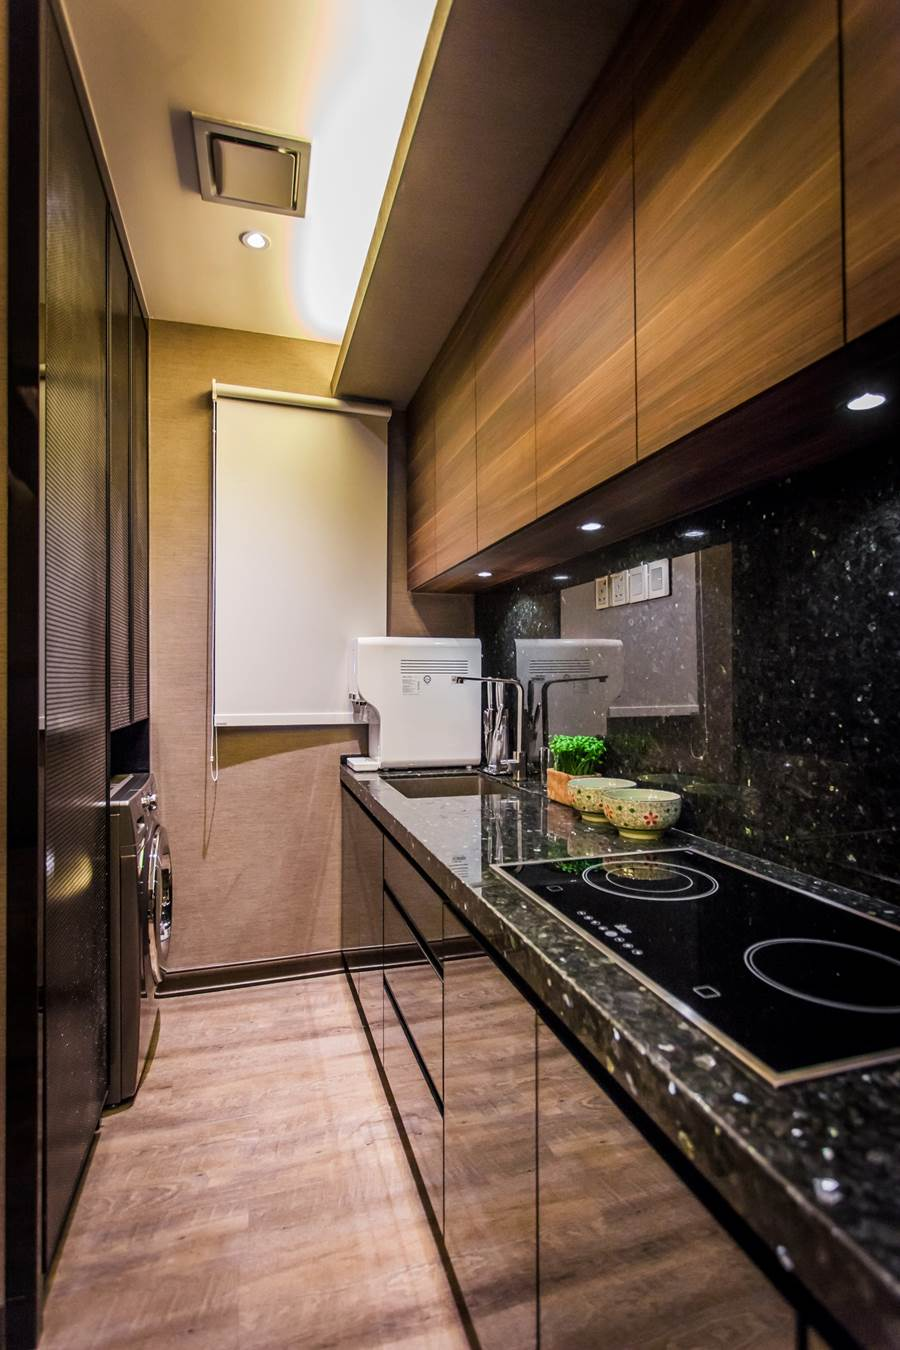 ... Simple yet stylish condominium kitchen design by Zeng Interior Design Space. & Dreamy 900 sq/ft condominium interior by Zeng Interior Design Space